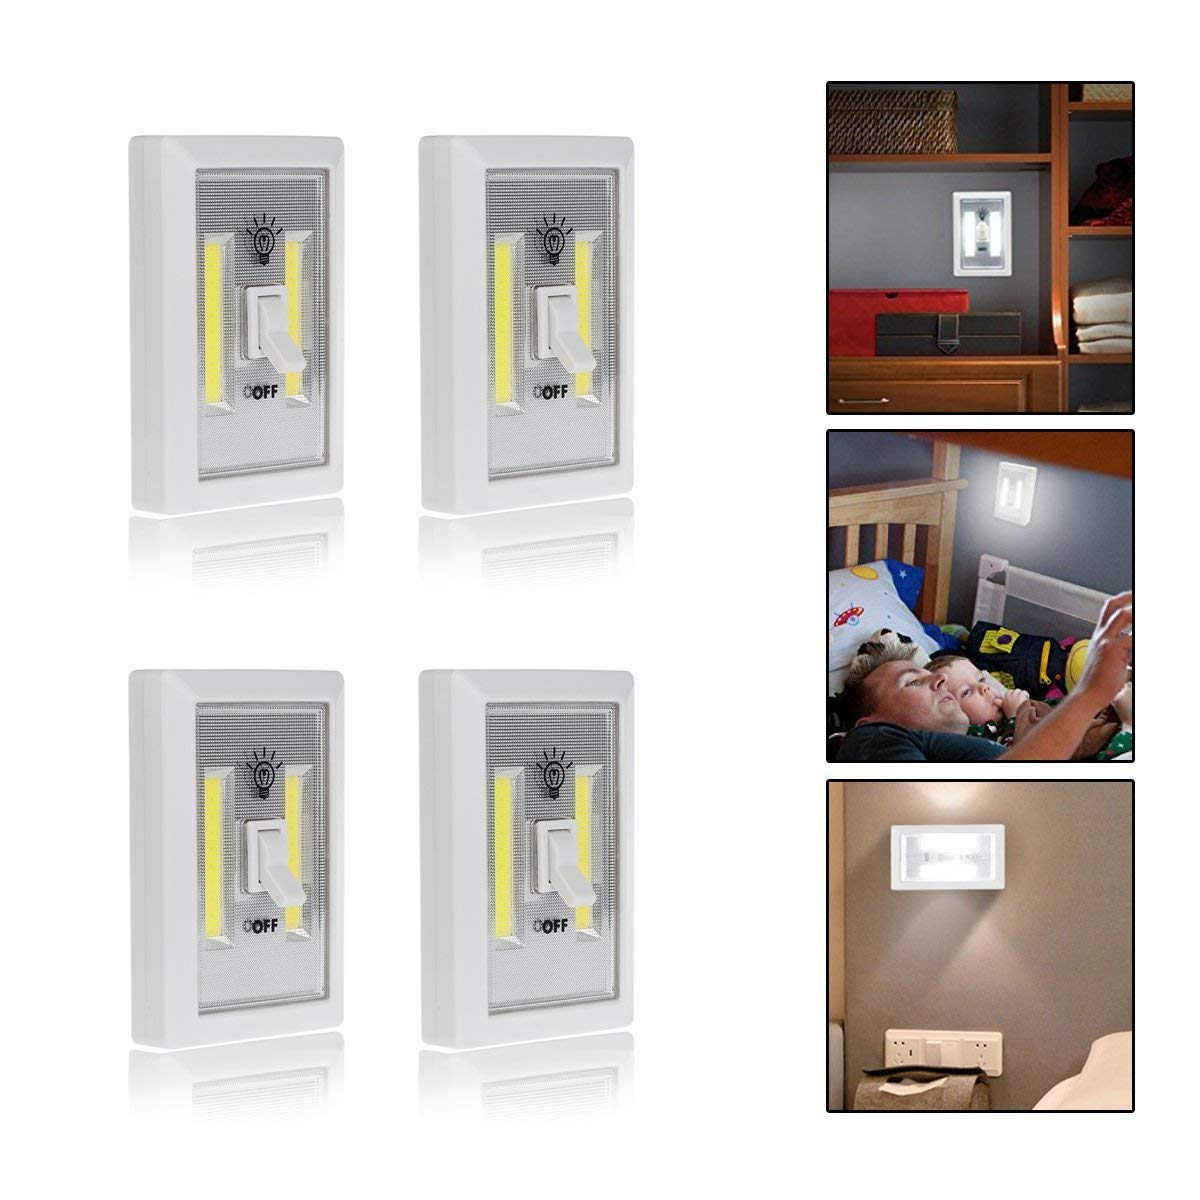 Bonanic COB LED Cordless Light,Closet Light,Battery Operated LED Wall Night Lights,Tap Light,Switch Wireless Closet Night,Mount at Under Cabinet, Closet Shelf,4 Pack(Battery not included)